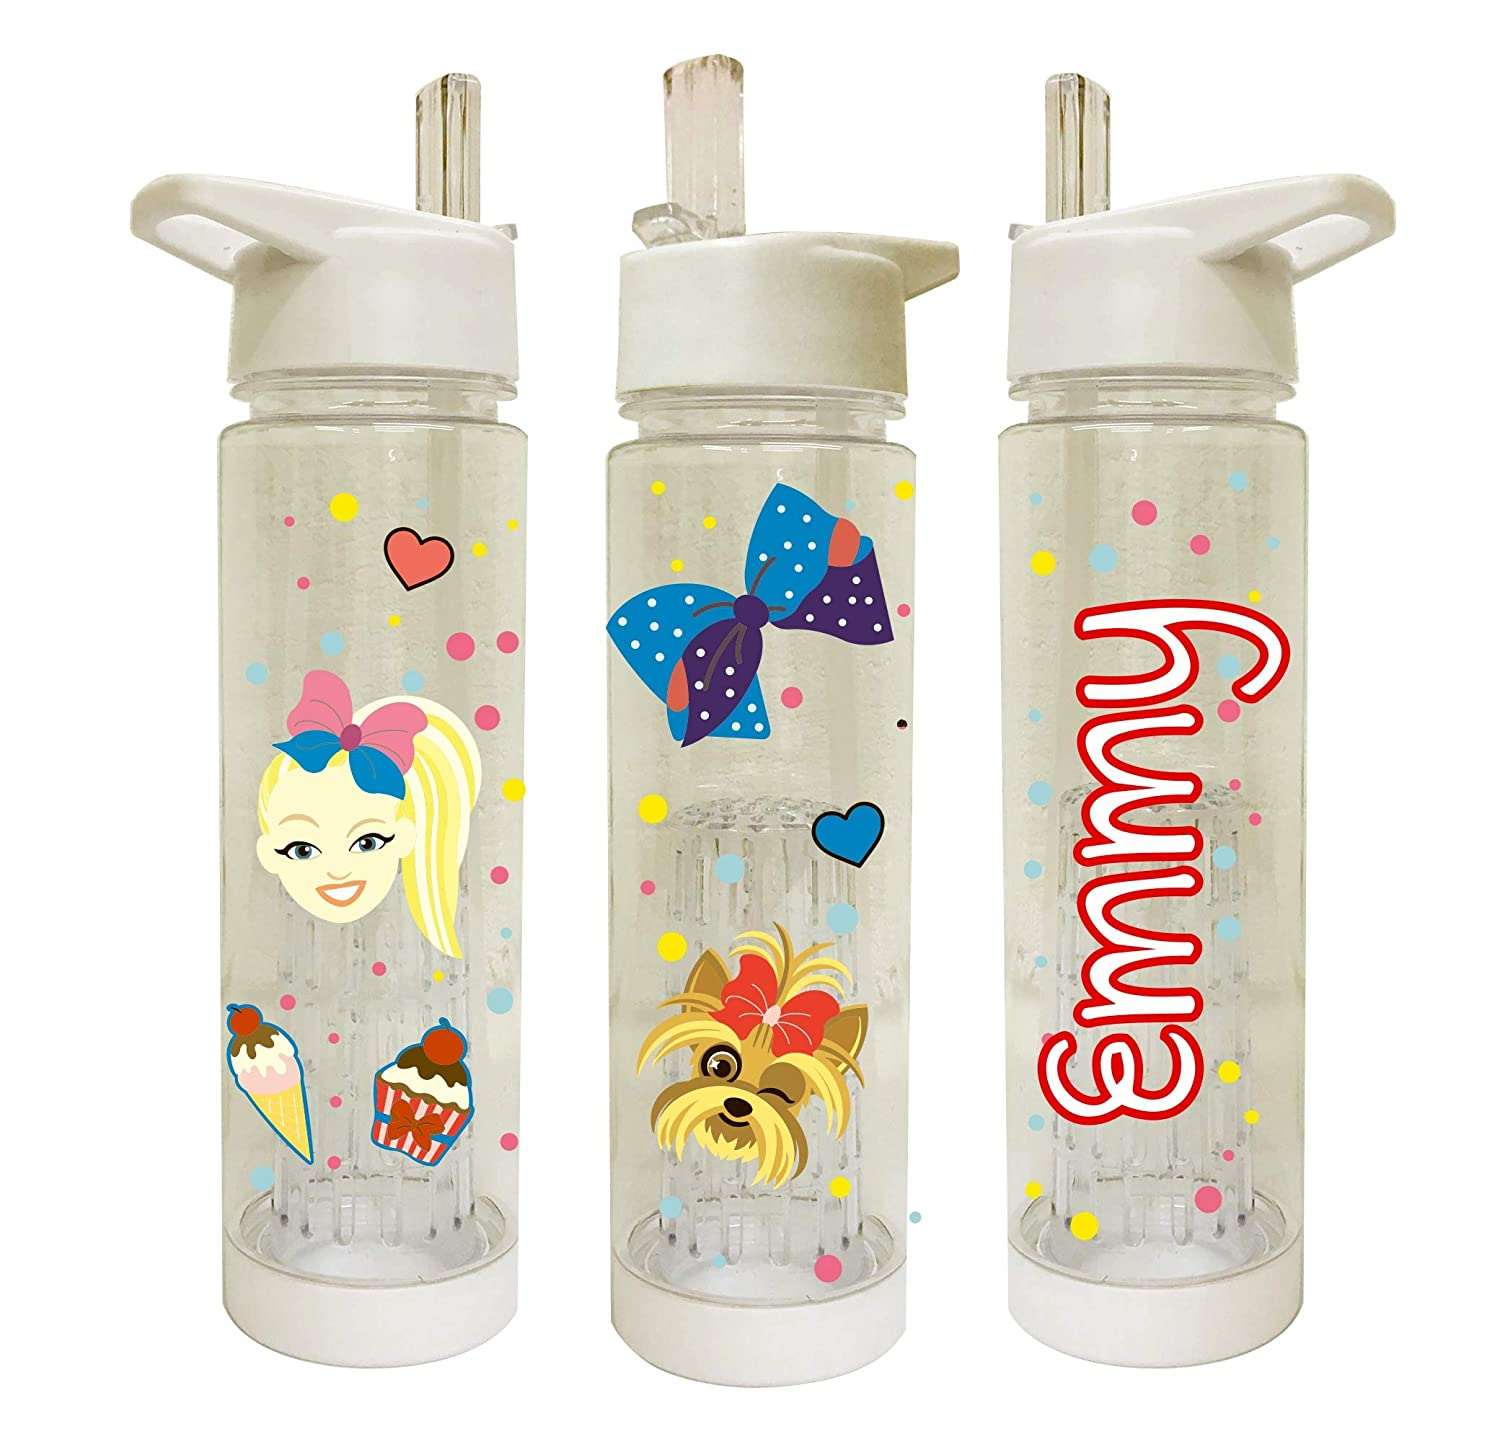 Add Your Name Pink Custom Design Uveeka Official Love Our Islander Style Personalised Water Bottles *Scratch /& Washproof* White with Fruit Infuser